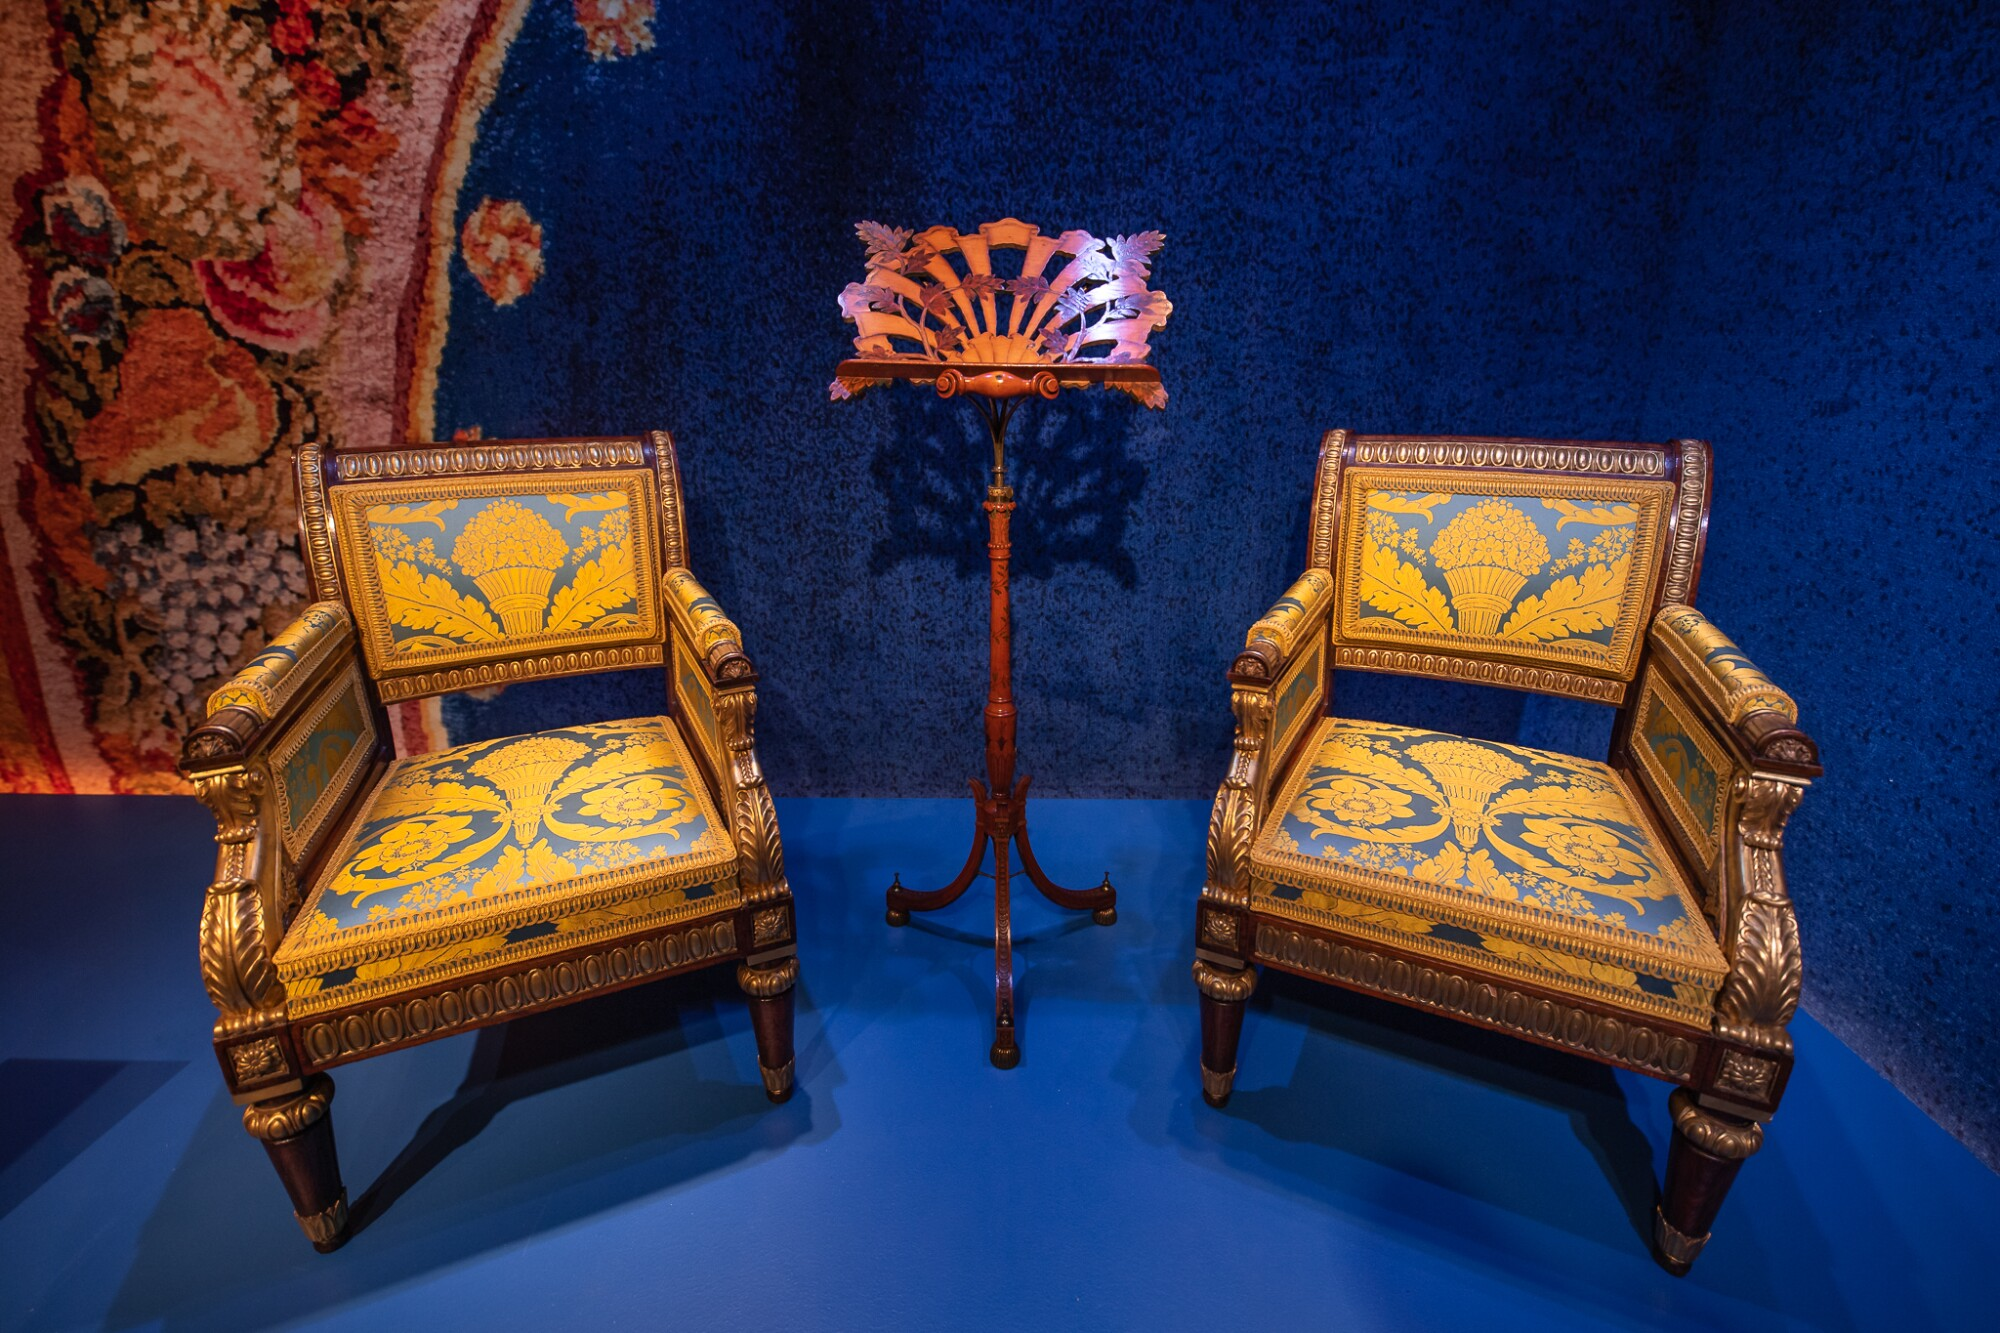 Treasures from Chatsworth: The Exhibition